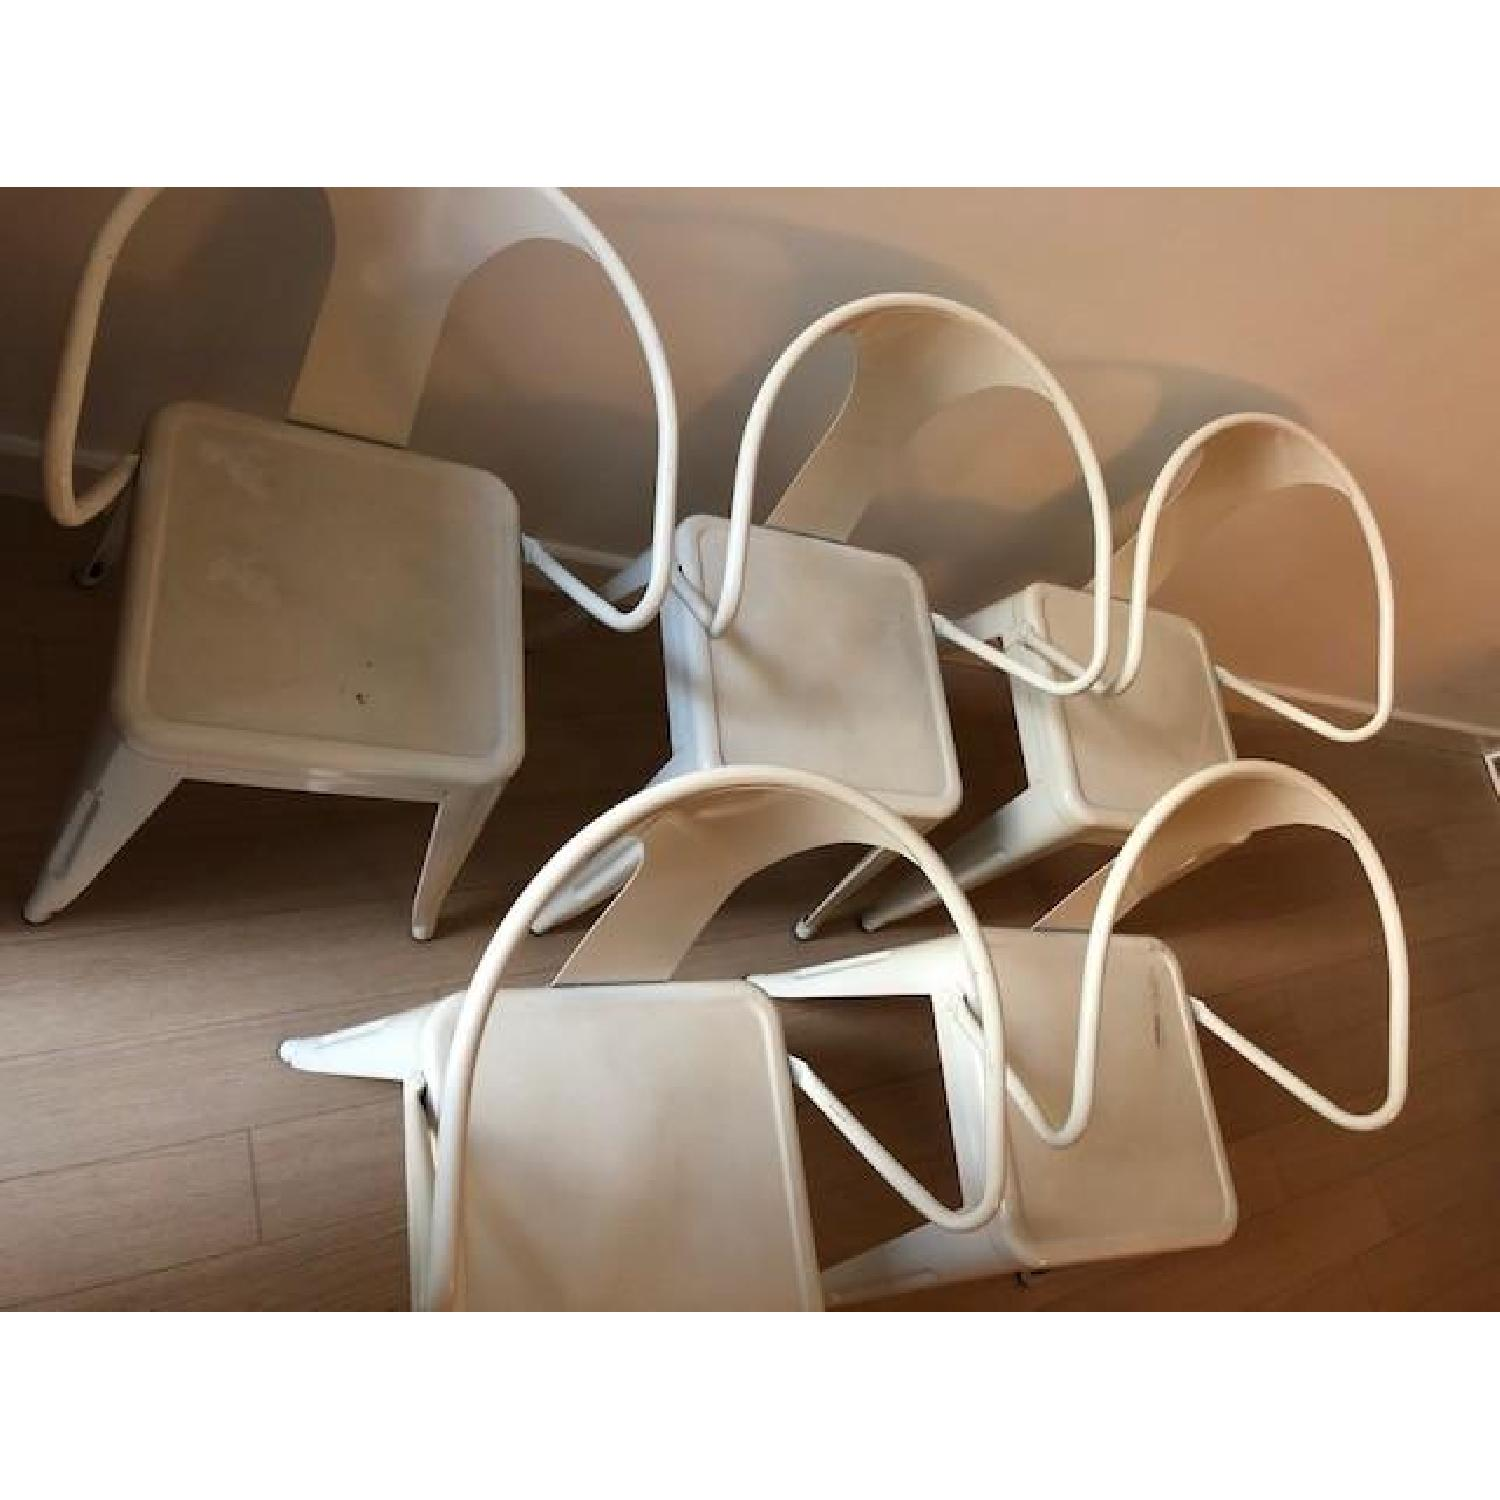 ... White Tabouret Stacking Chair 2